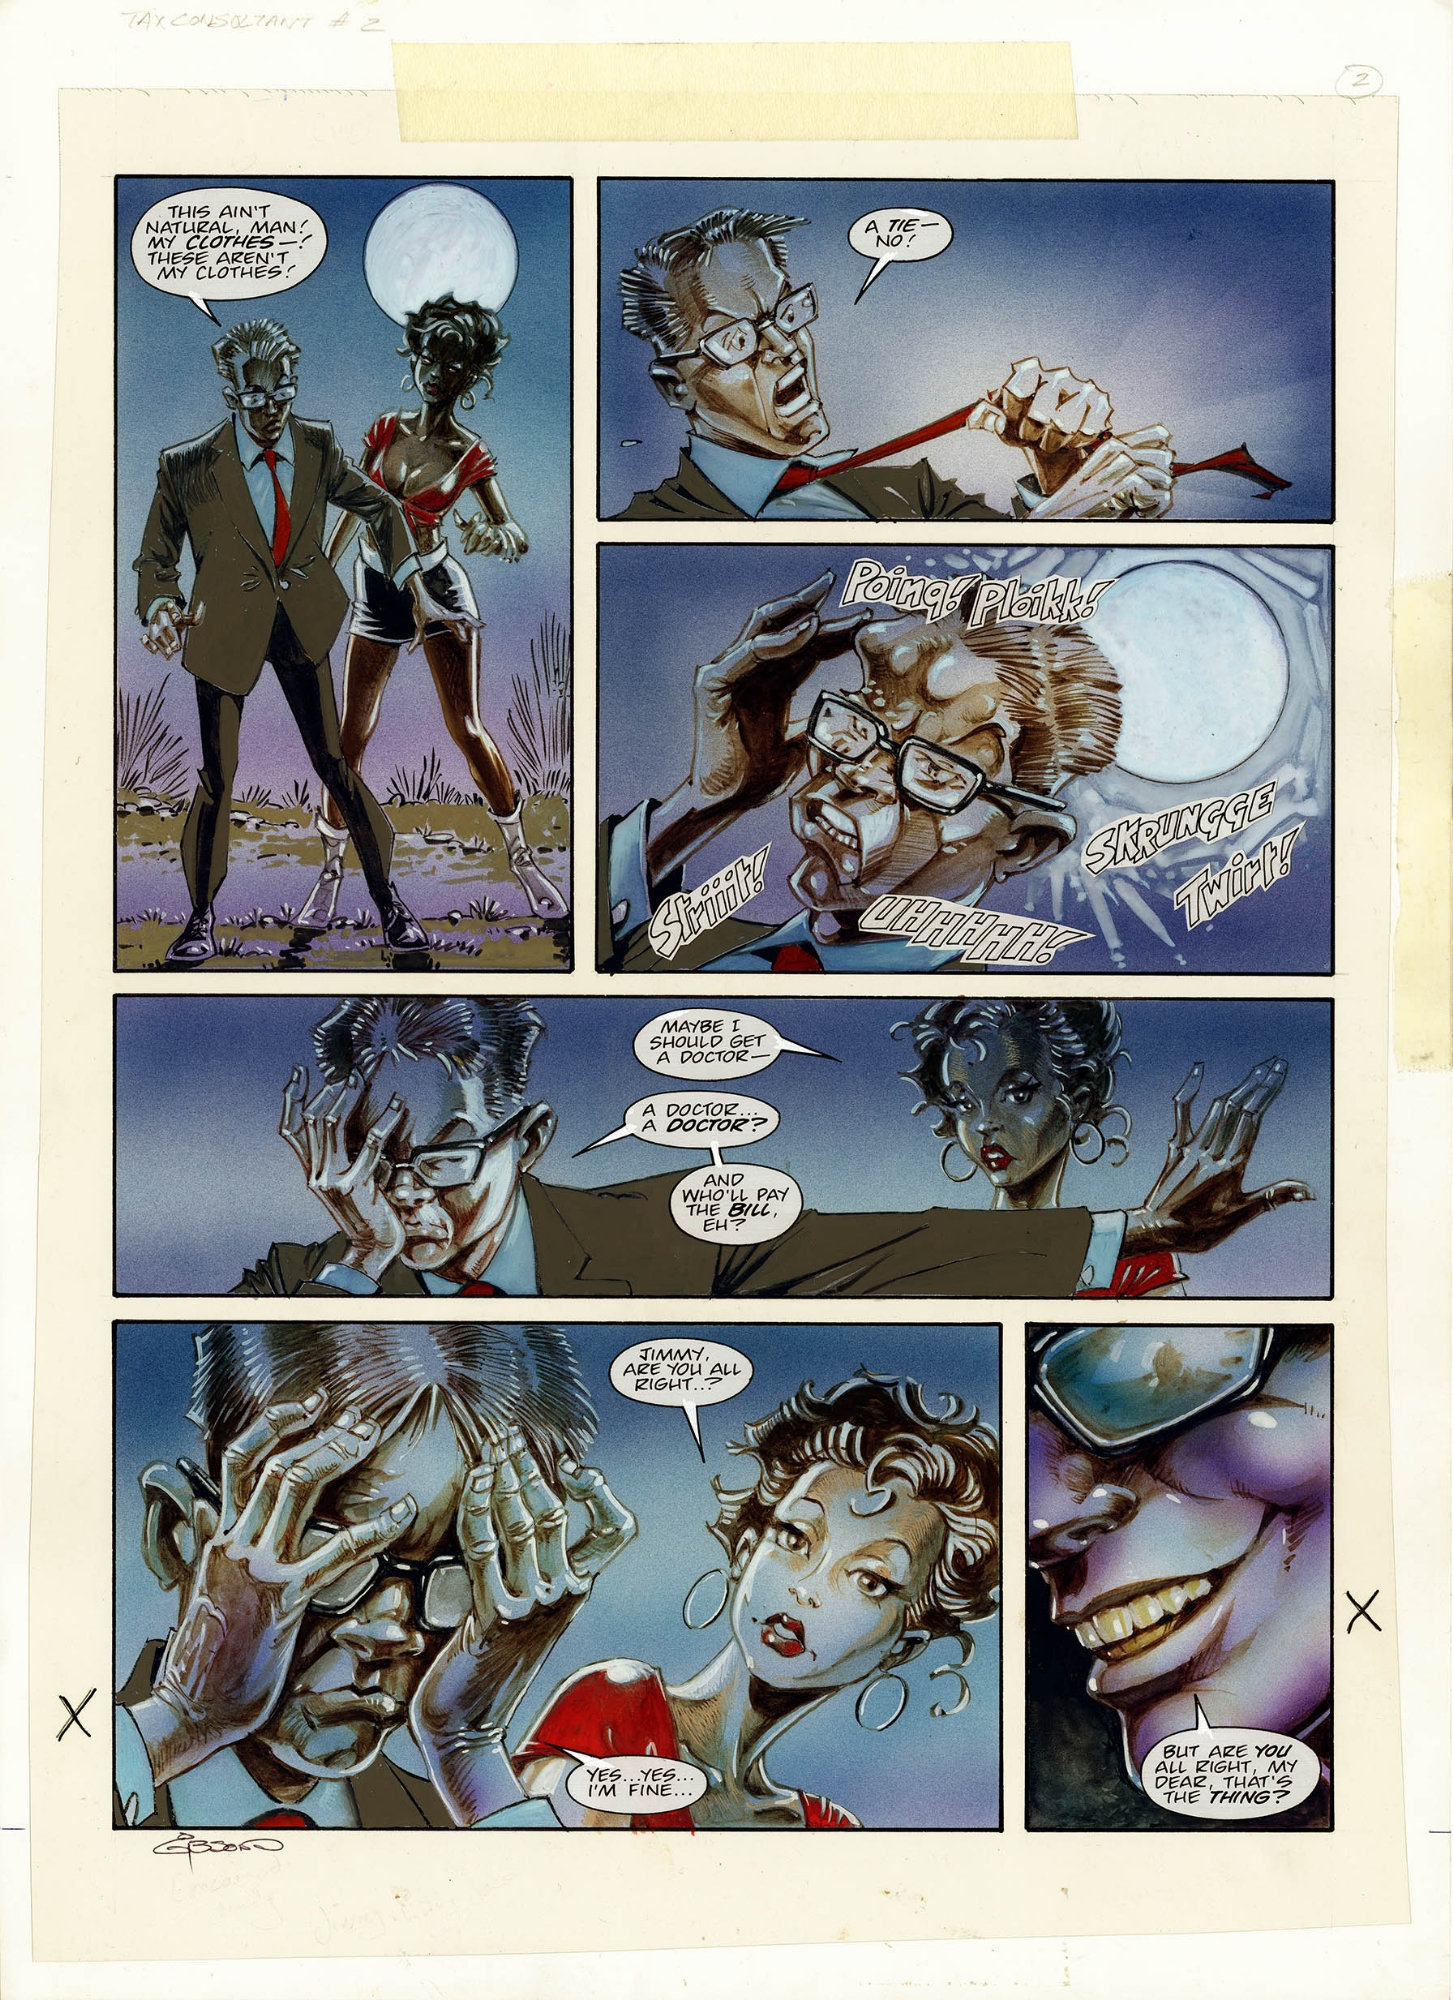 2000ad Prog 1051 Page 21 I Was A Teenage Tax Consultant Ian Gibson John Wagner In Artdroids Co Uk Artdroids Co Uk S Ian Gibson Comic Art Gallery Room